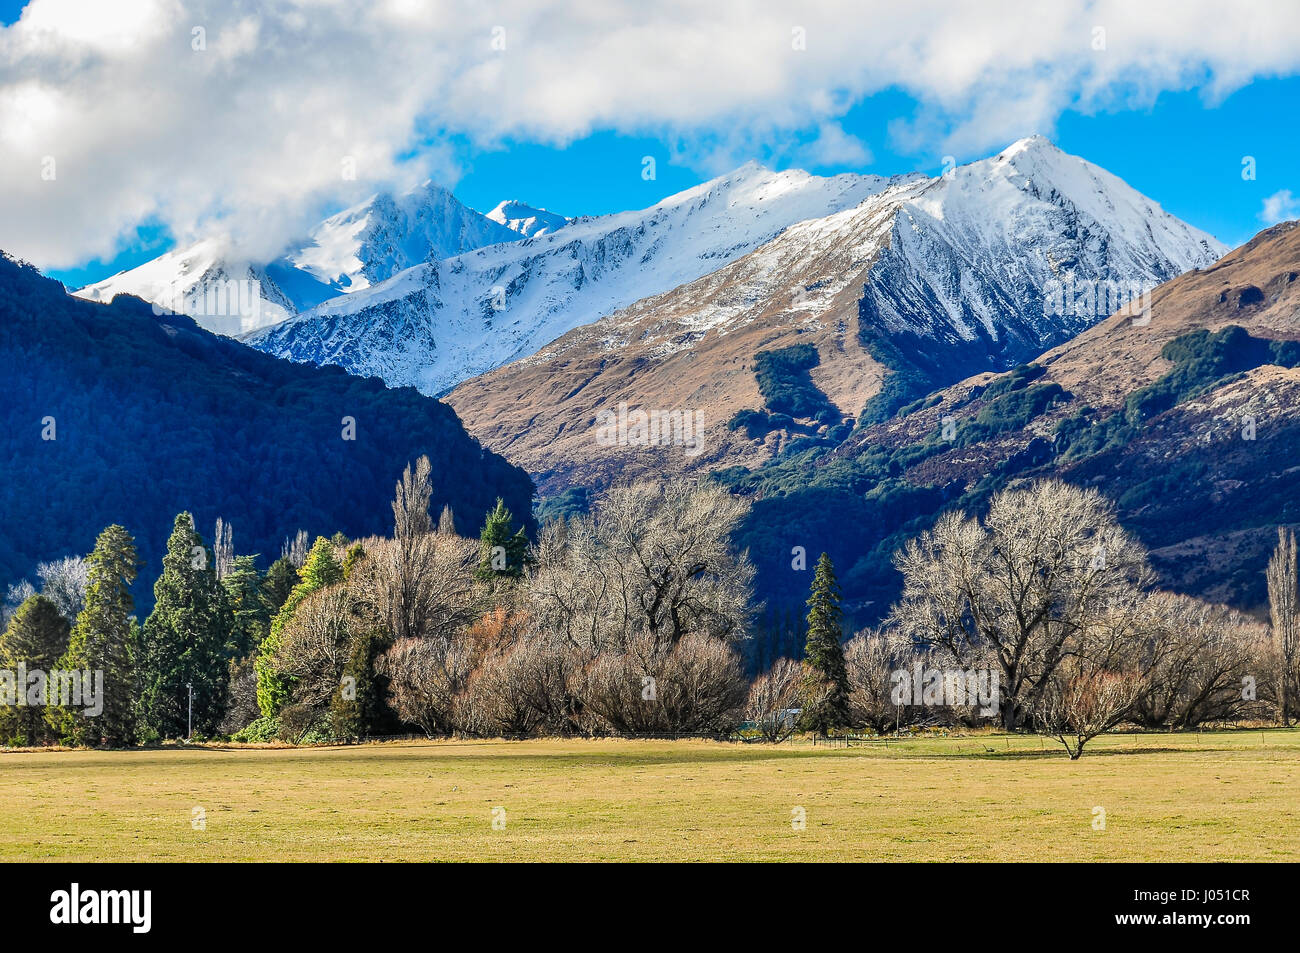 Snowy mountain peaks in Lord of the Rings film location, Glenorchy, New Zealand - Stock Image